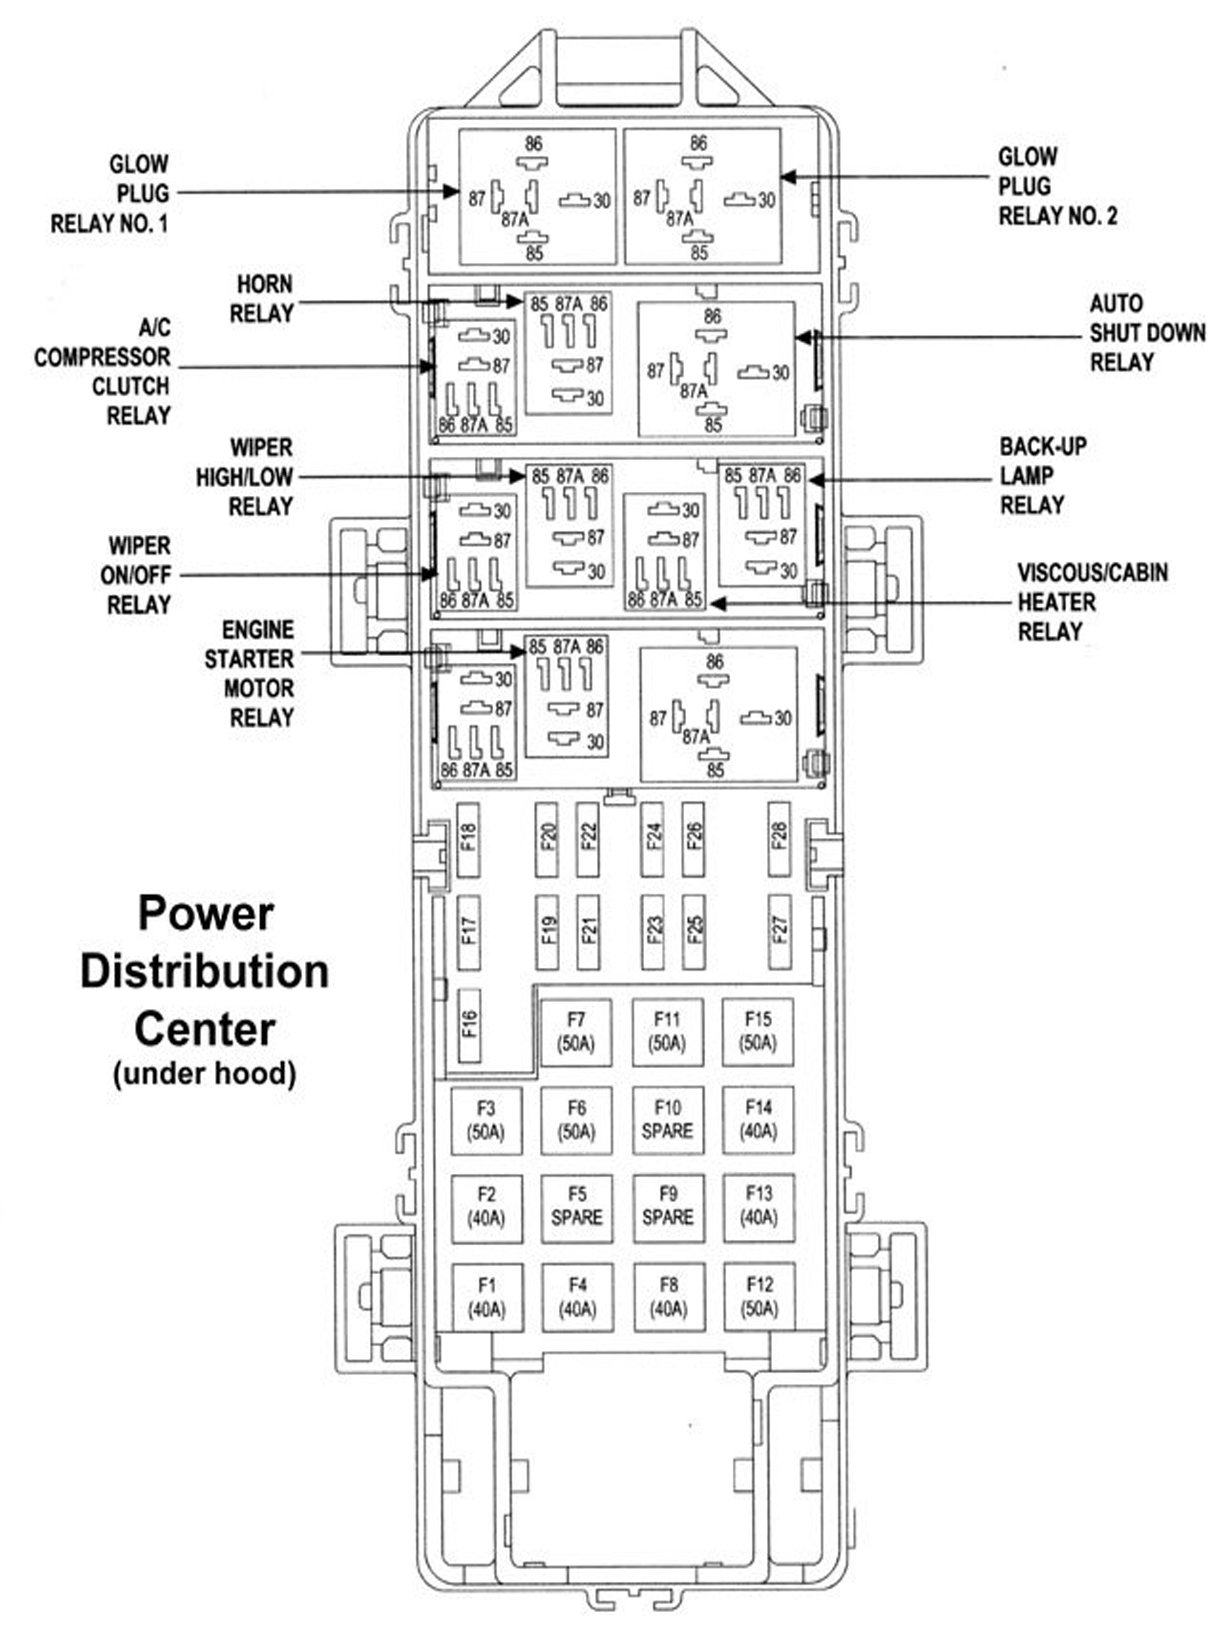 1999 jeep fuse box wiring diagram data val 1999 jeep cherokee fuse box location 1999 jeep fuse box [ 1224 x 1632 Pixel ]